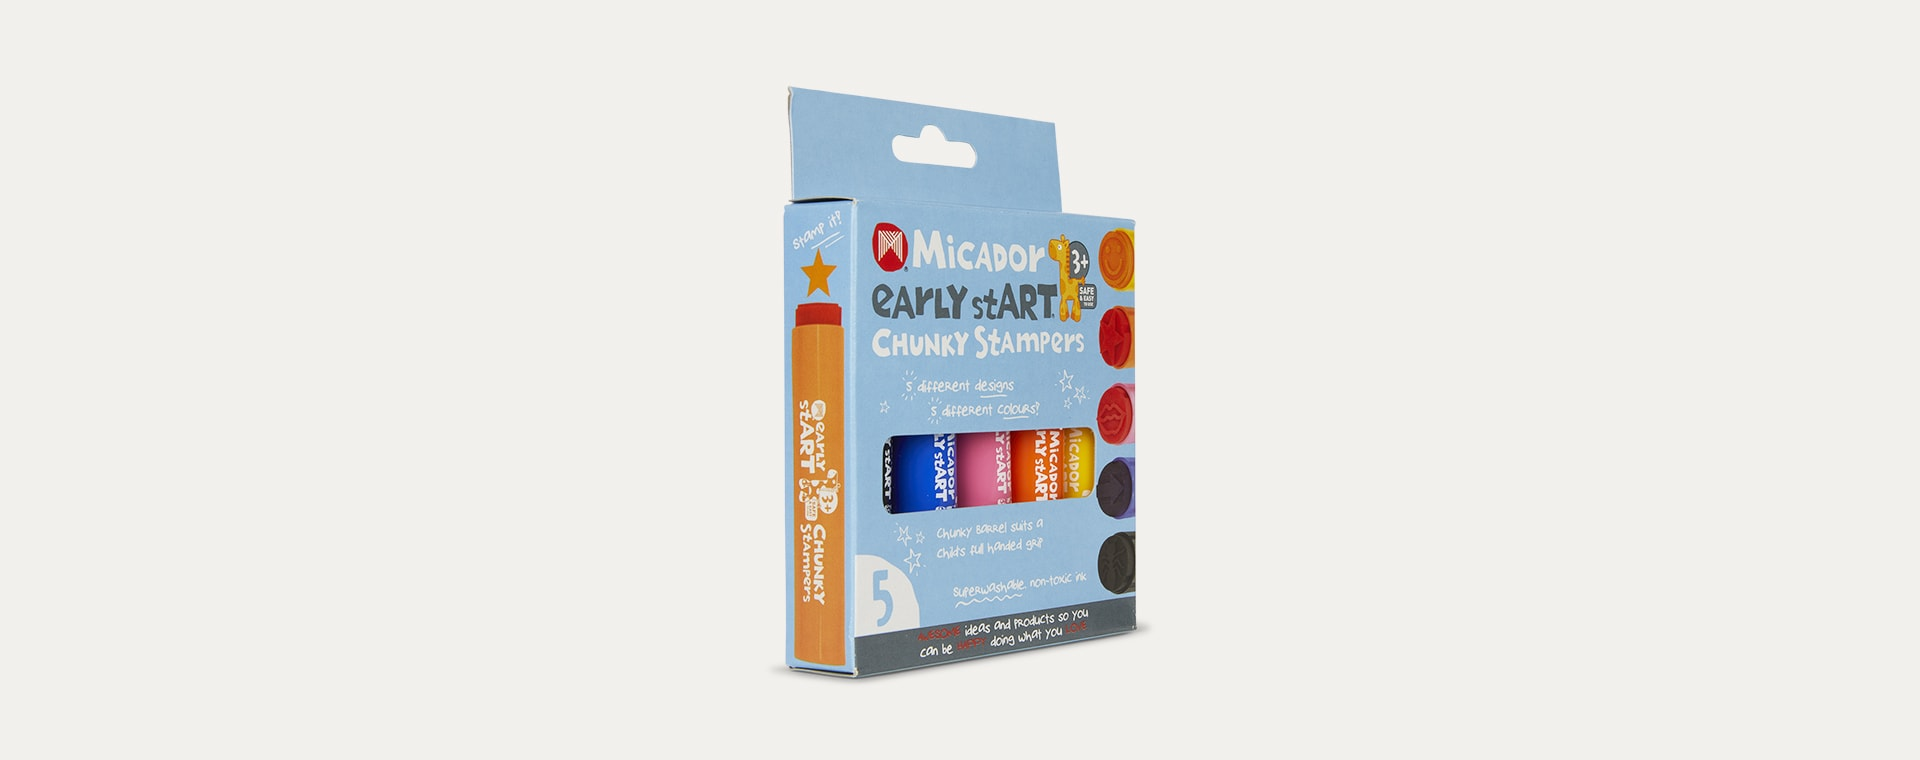 Multi Micador Early stART Chunky Stampers 5 Pack